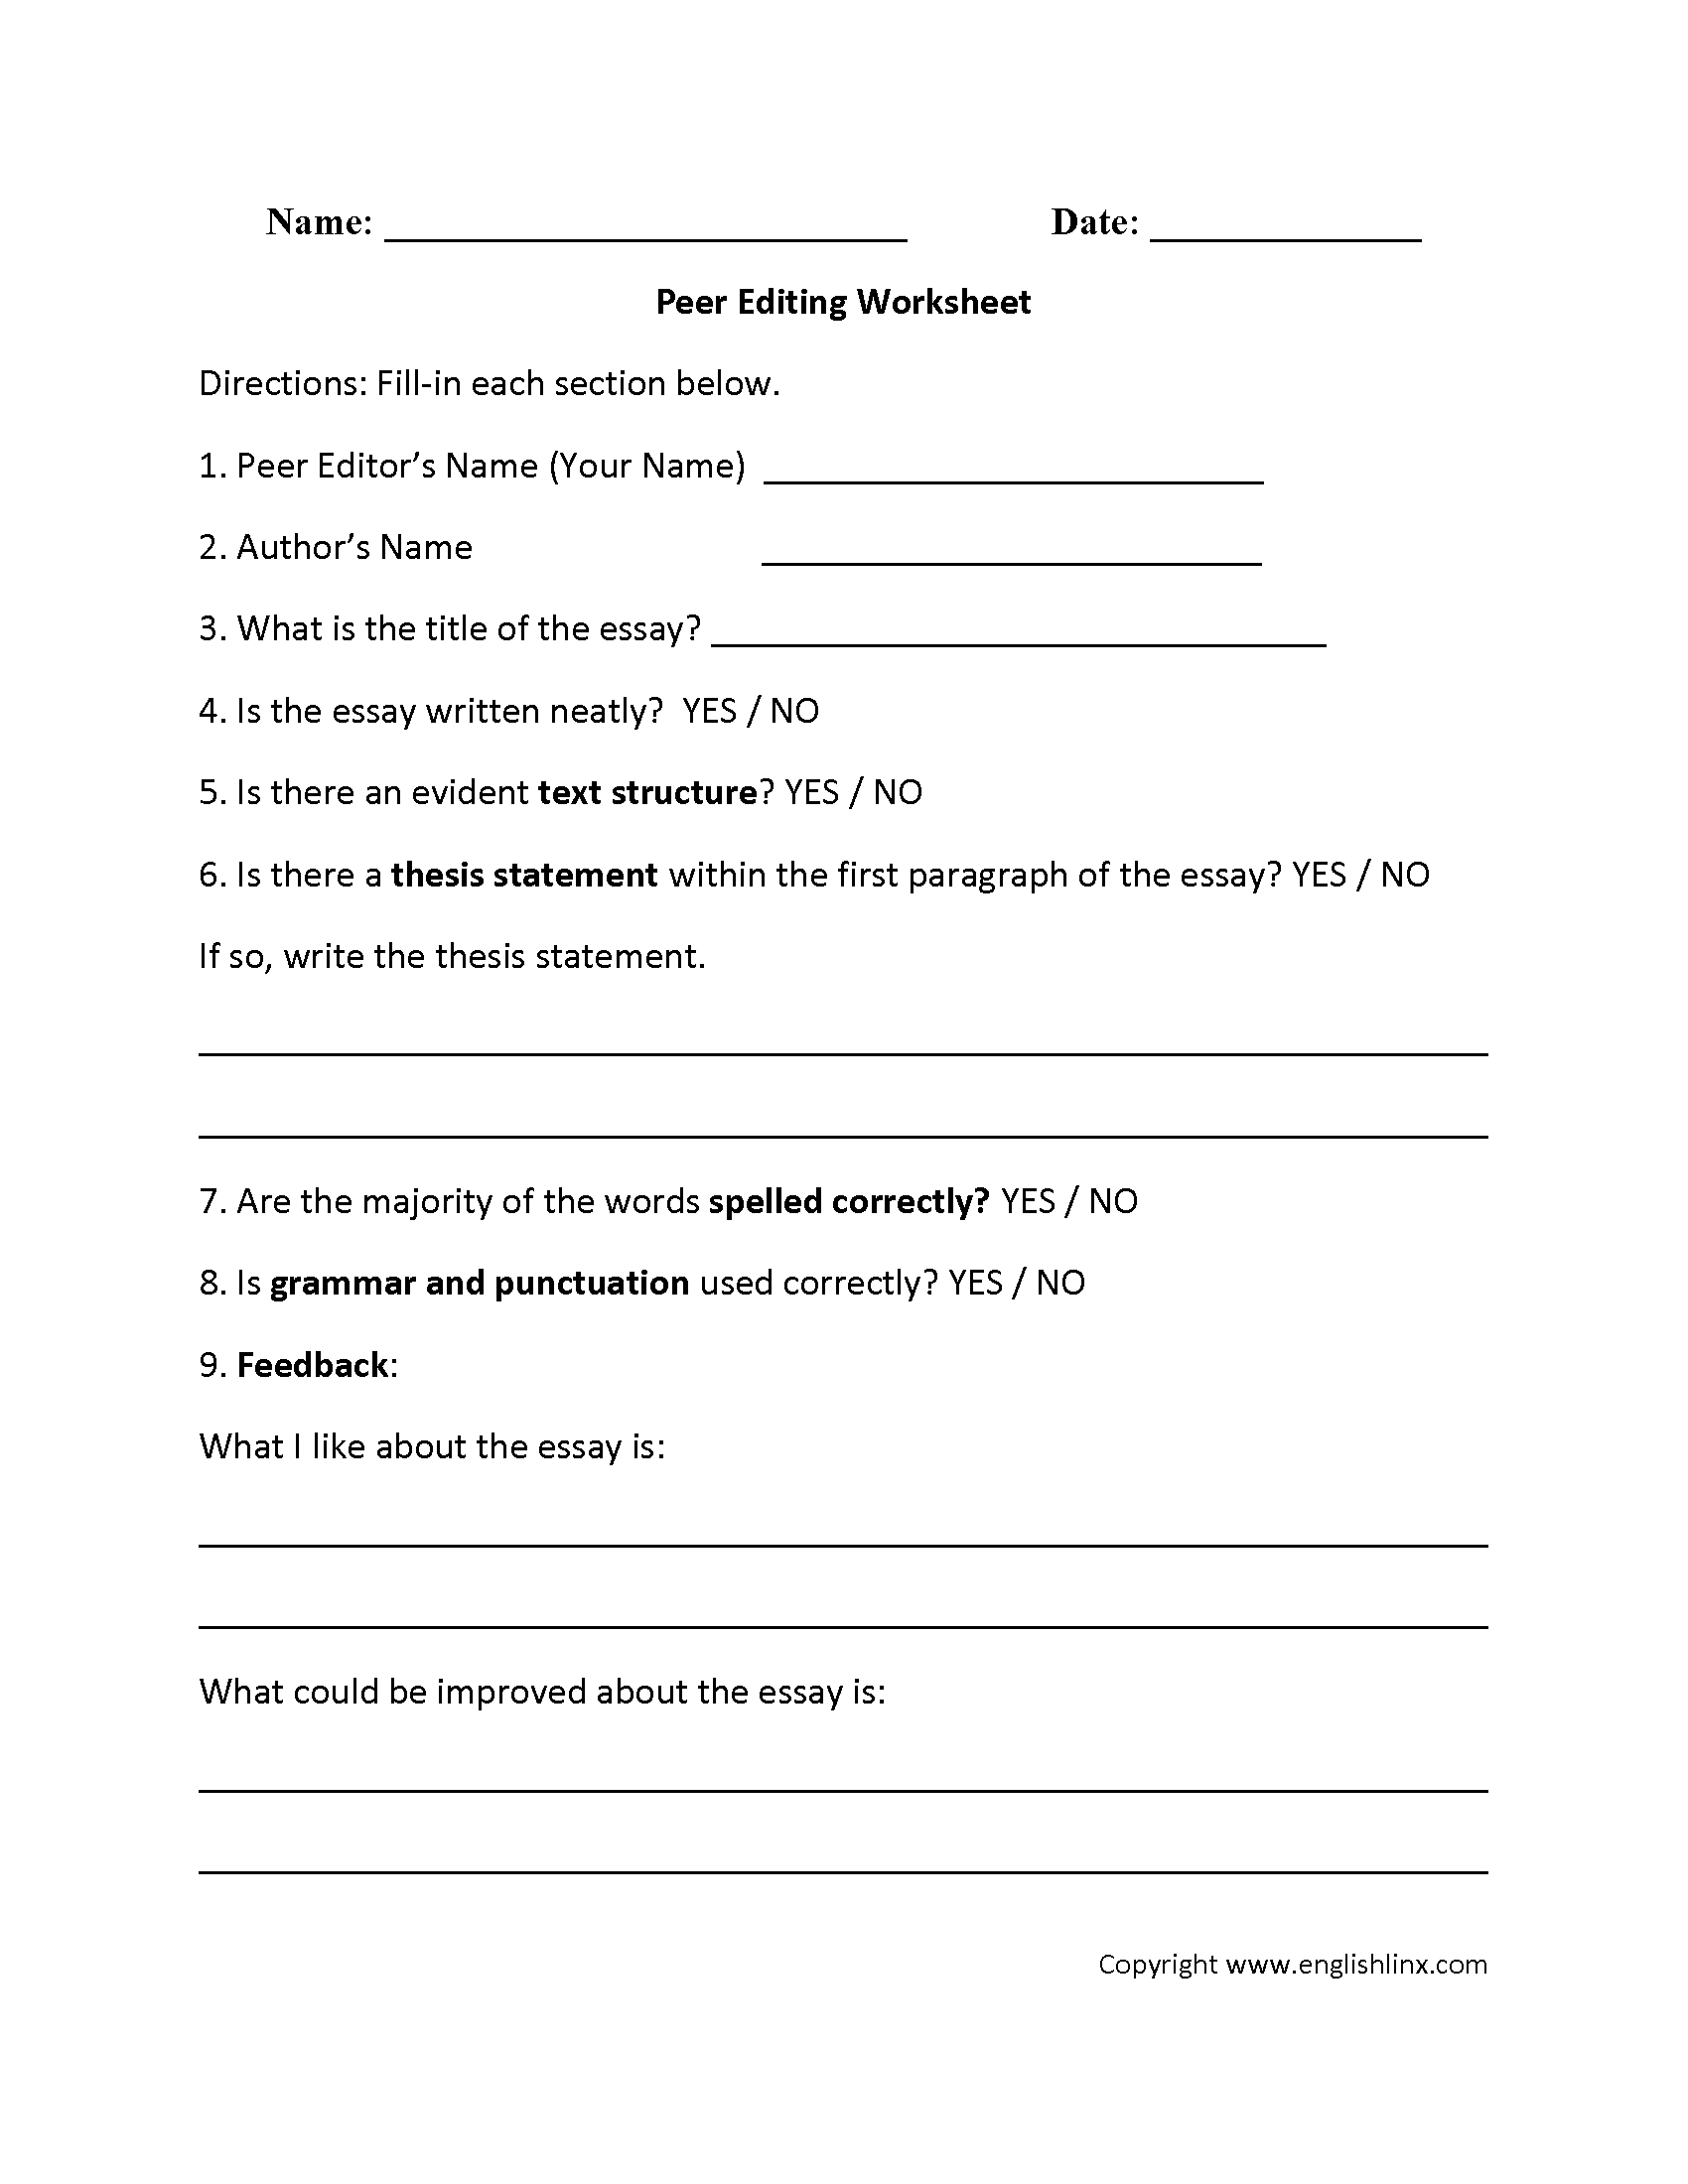 Worksheets Third Grade Editing Worksheets writing worksheets editing worksheets